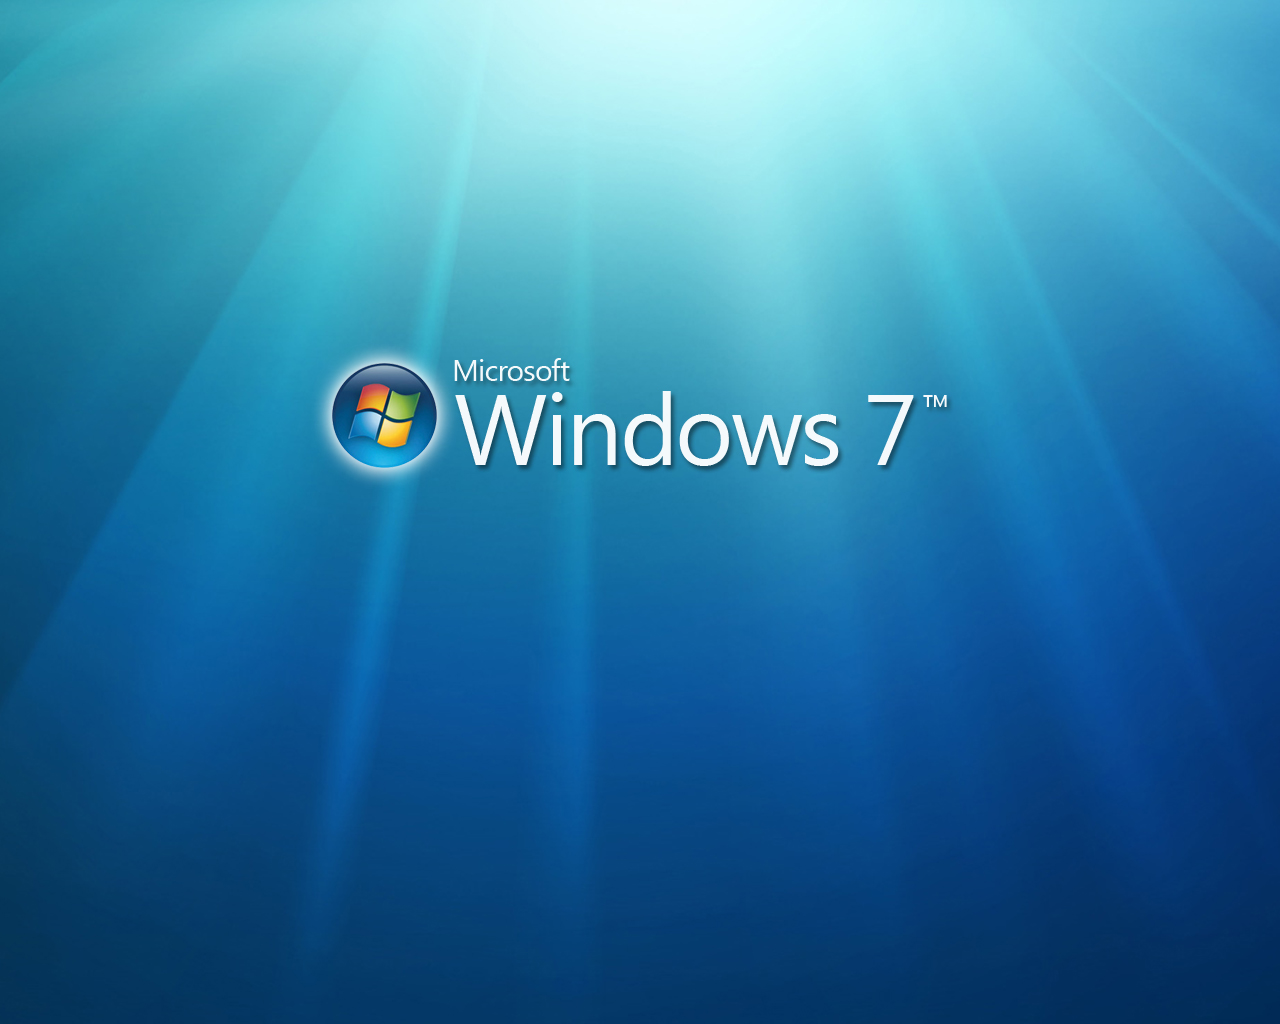 Windows 7 Wallpapers Backgrounds Hd 03